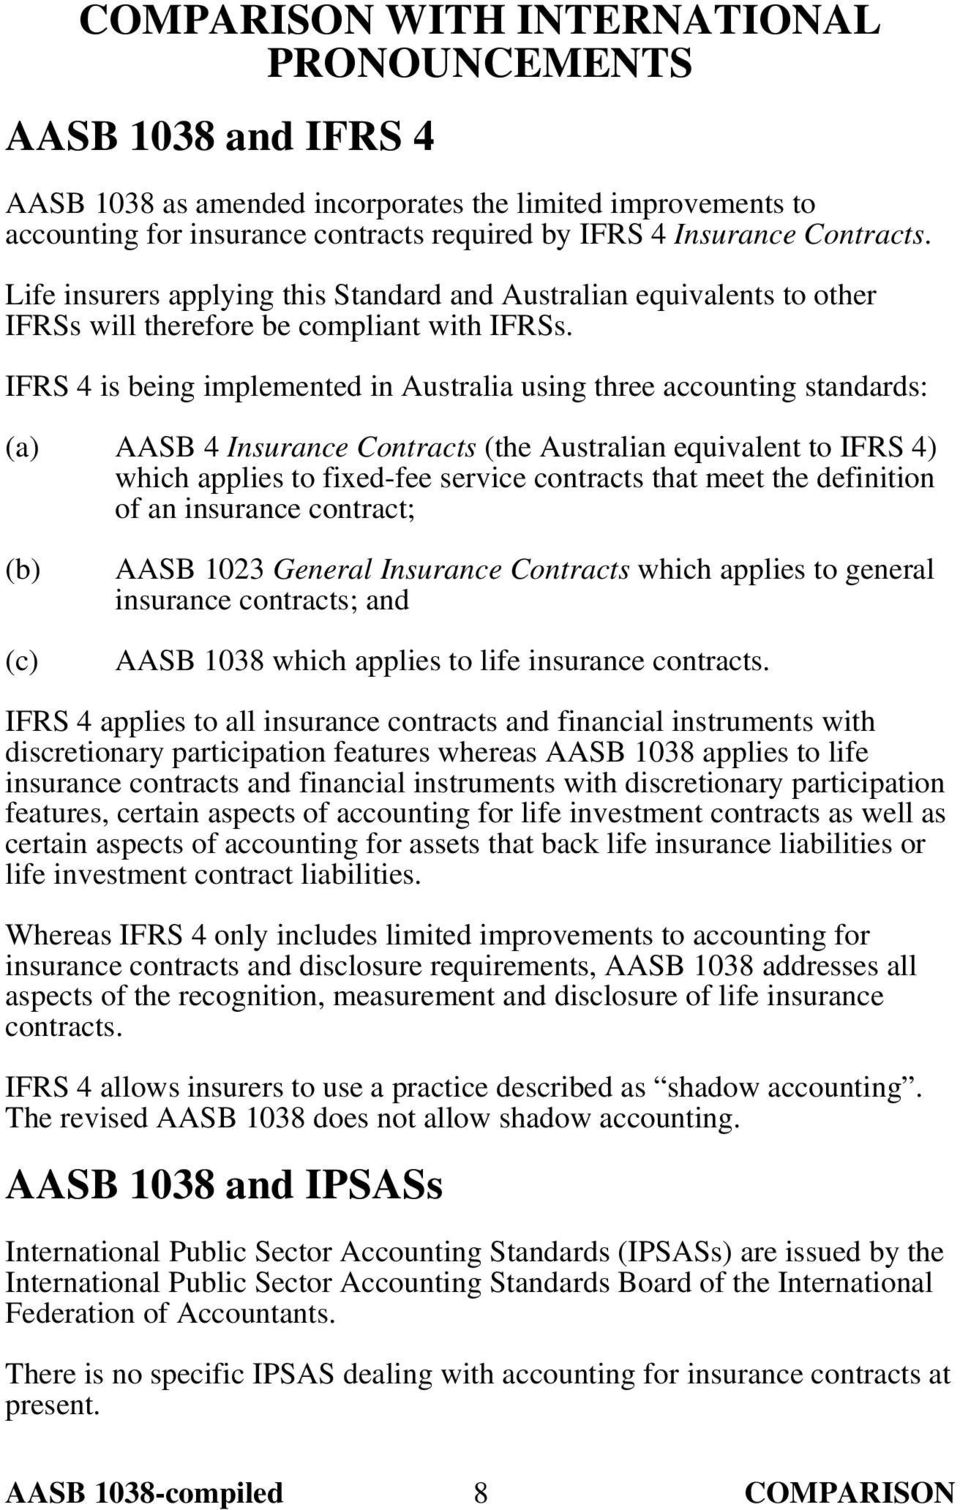 IFRS 4 is being implemented in Australia using three accounting standards: AASB 4 Insurance Contracts (the Australian equivalent to IFRS 4) which applies to fixed-fee service contracts that meet the